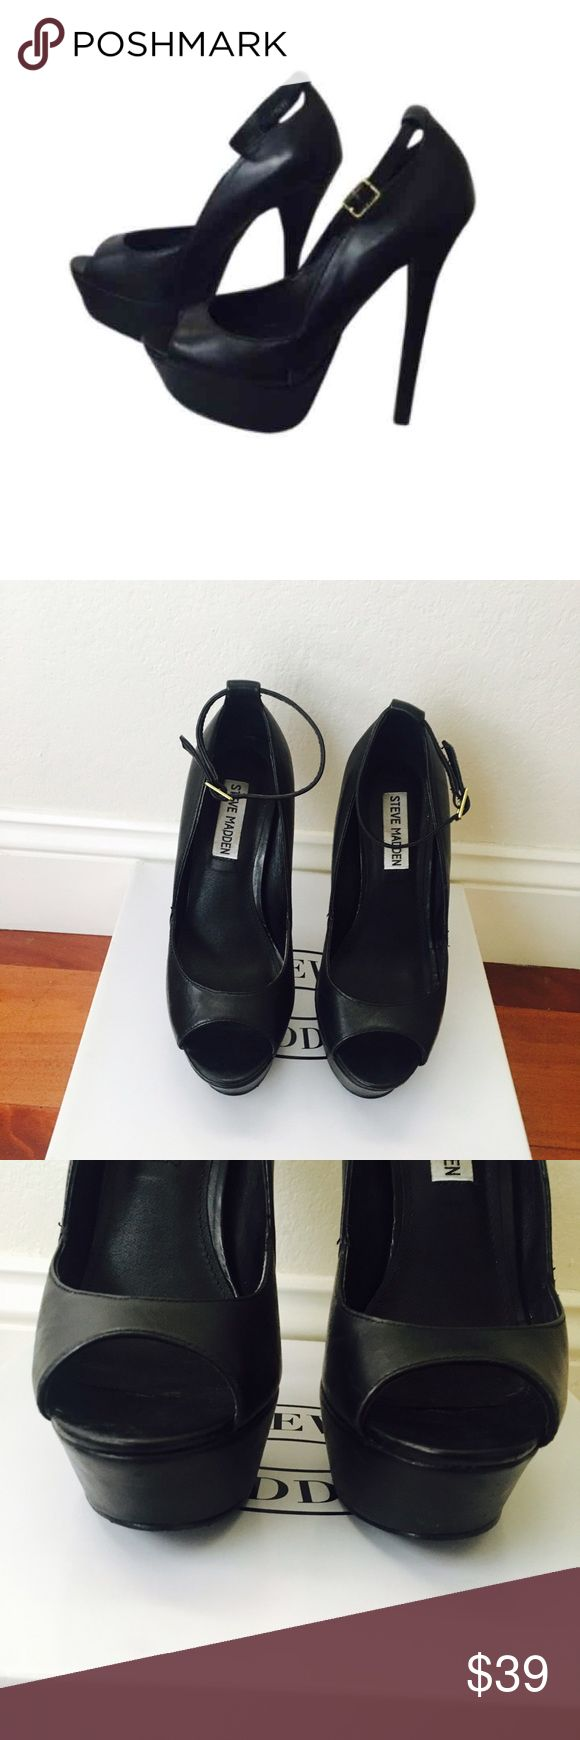 🆕Steve Madden Black Heels Steve Madden black heels gently worn. Tiny blemishes on heel. Super comfy heels if you are used to the height! ▫️Size 6.5 ▫️Brass tone hardware  ▫️Leather upper ▫️Manmade sole 🔅BUNDLE & SAVE🔅 ✅Smoke/Pet free home 📦Shipment Days: Monday, Wednesday & Friday 🔘Please use offer button for all offers Steve Madden Shoes Heels